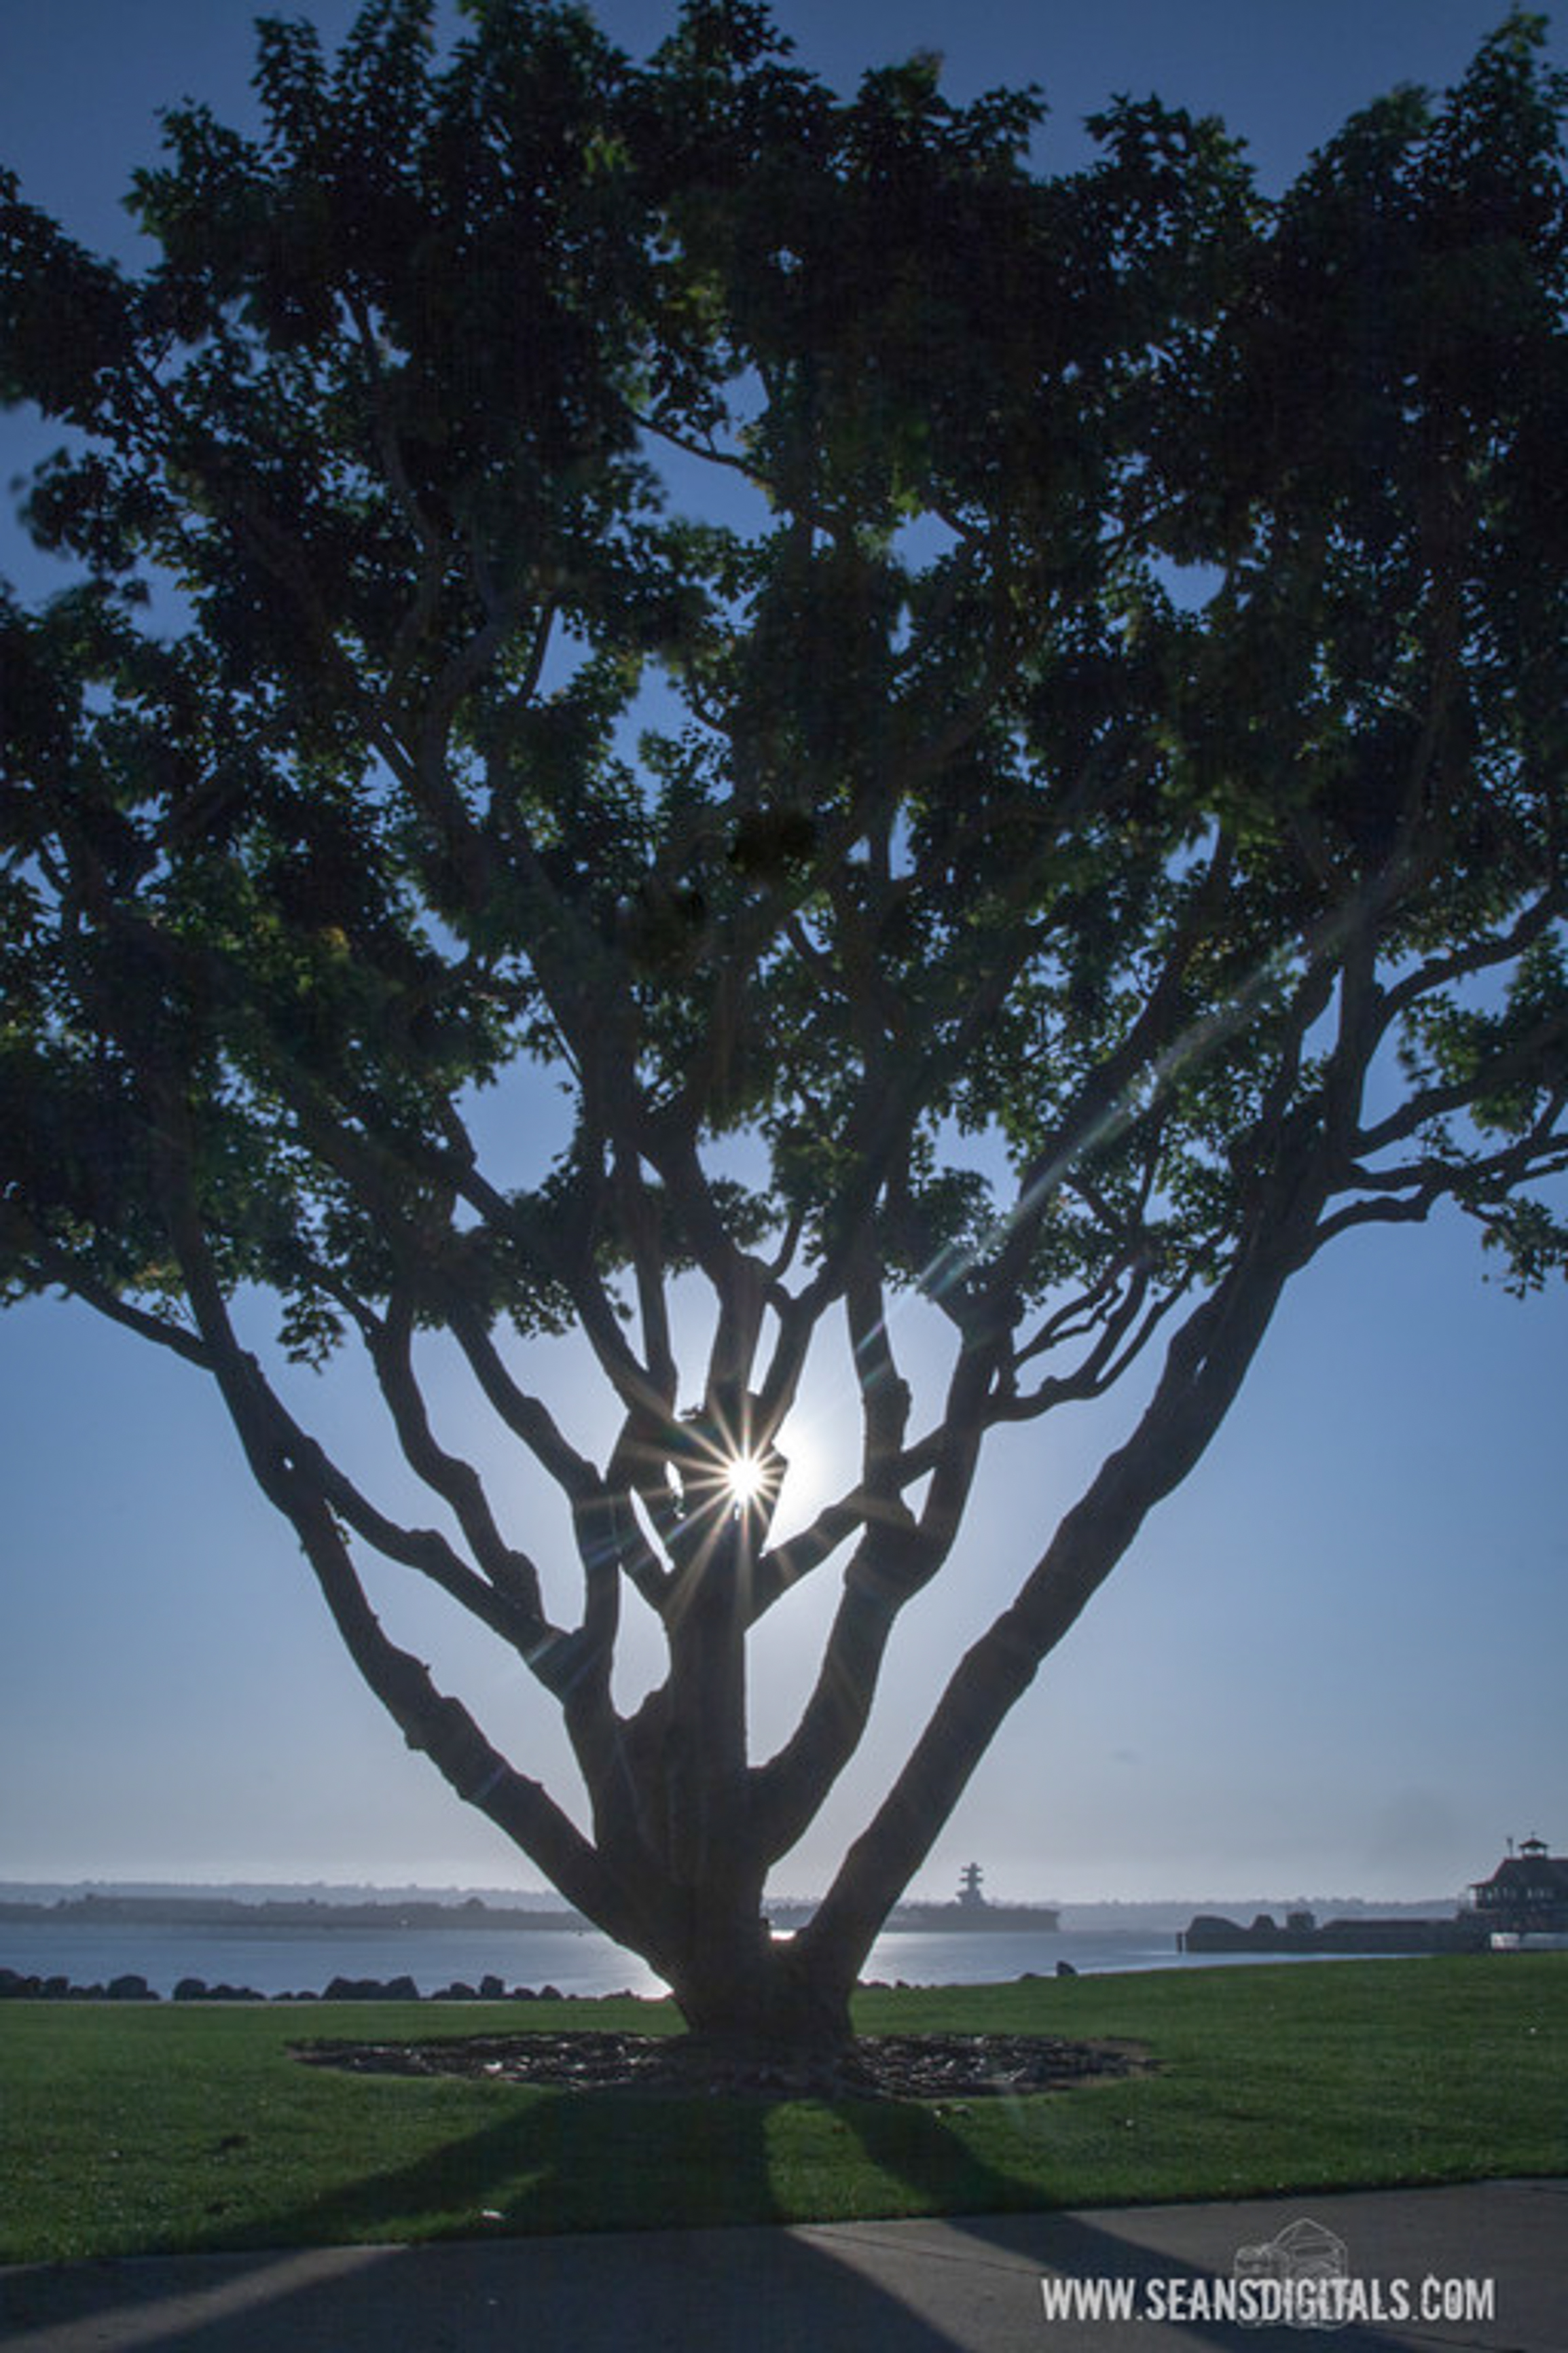 The sun shines through at Seaport Village